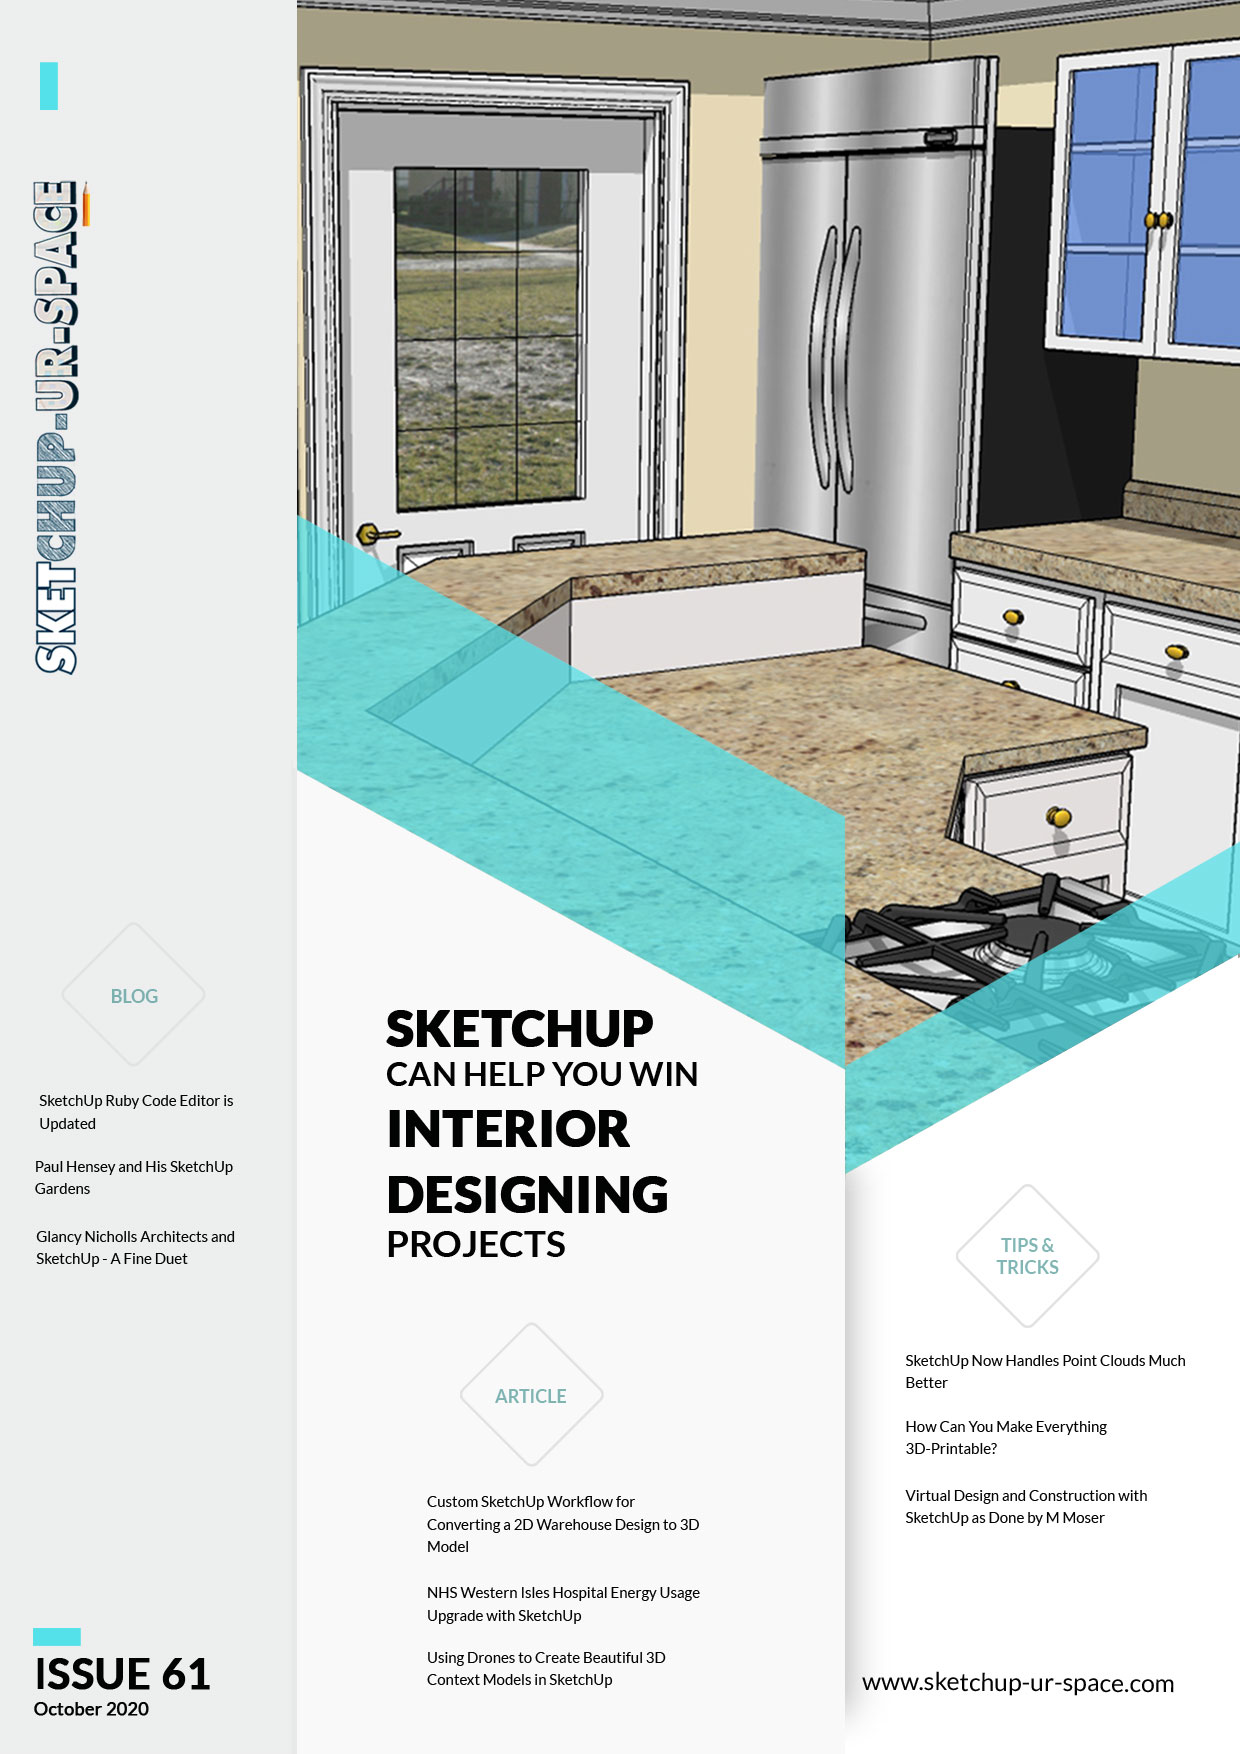 Sketchup-ur-space Magazine - October 2020